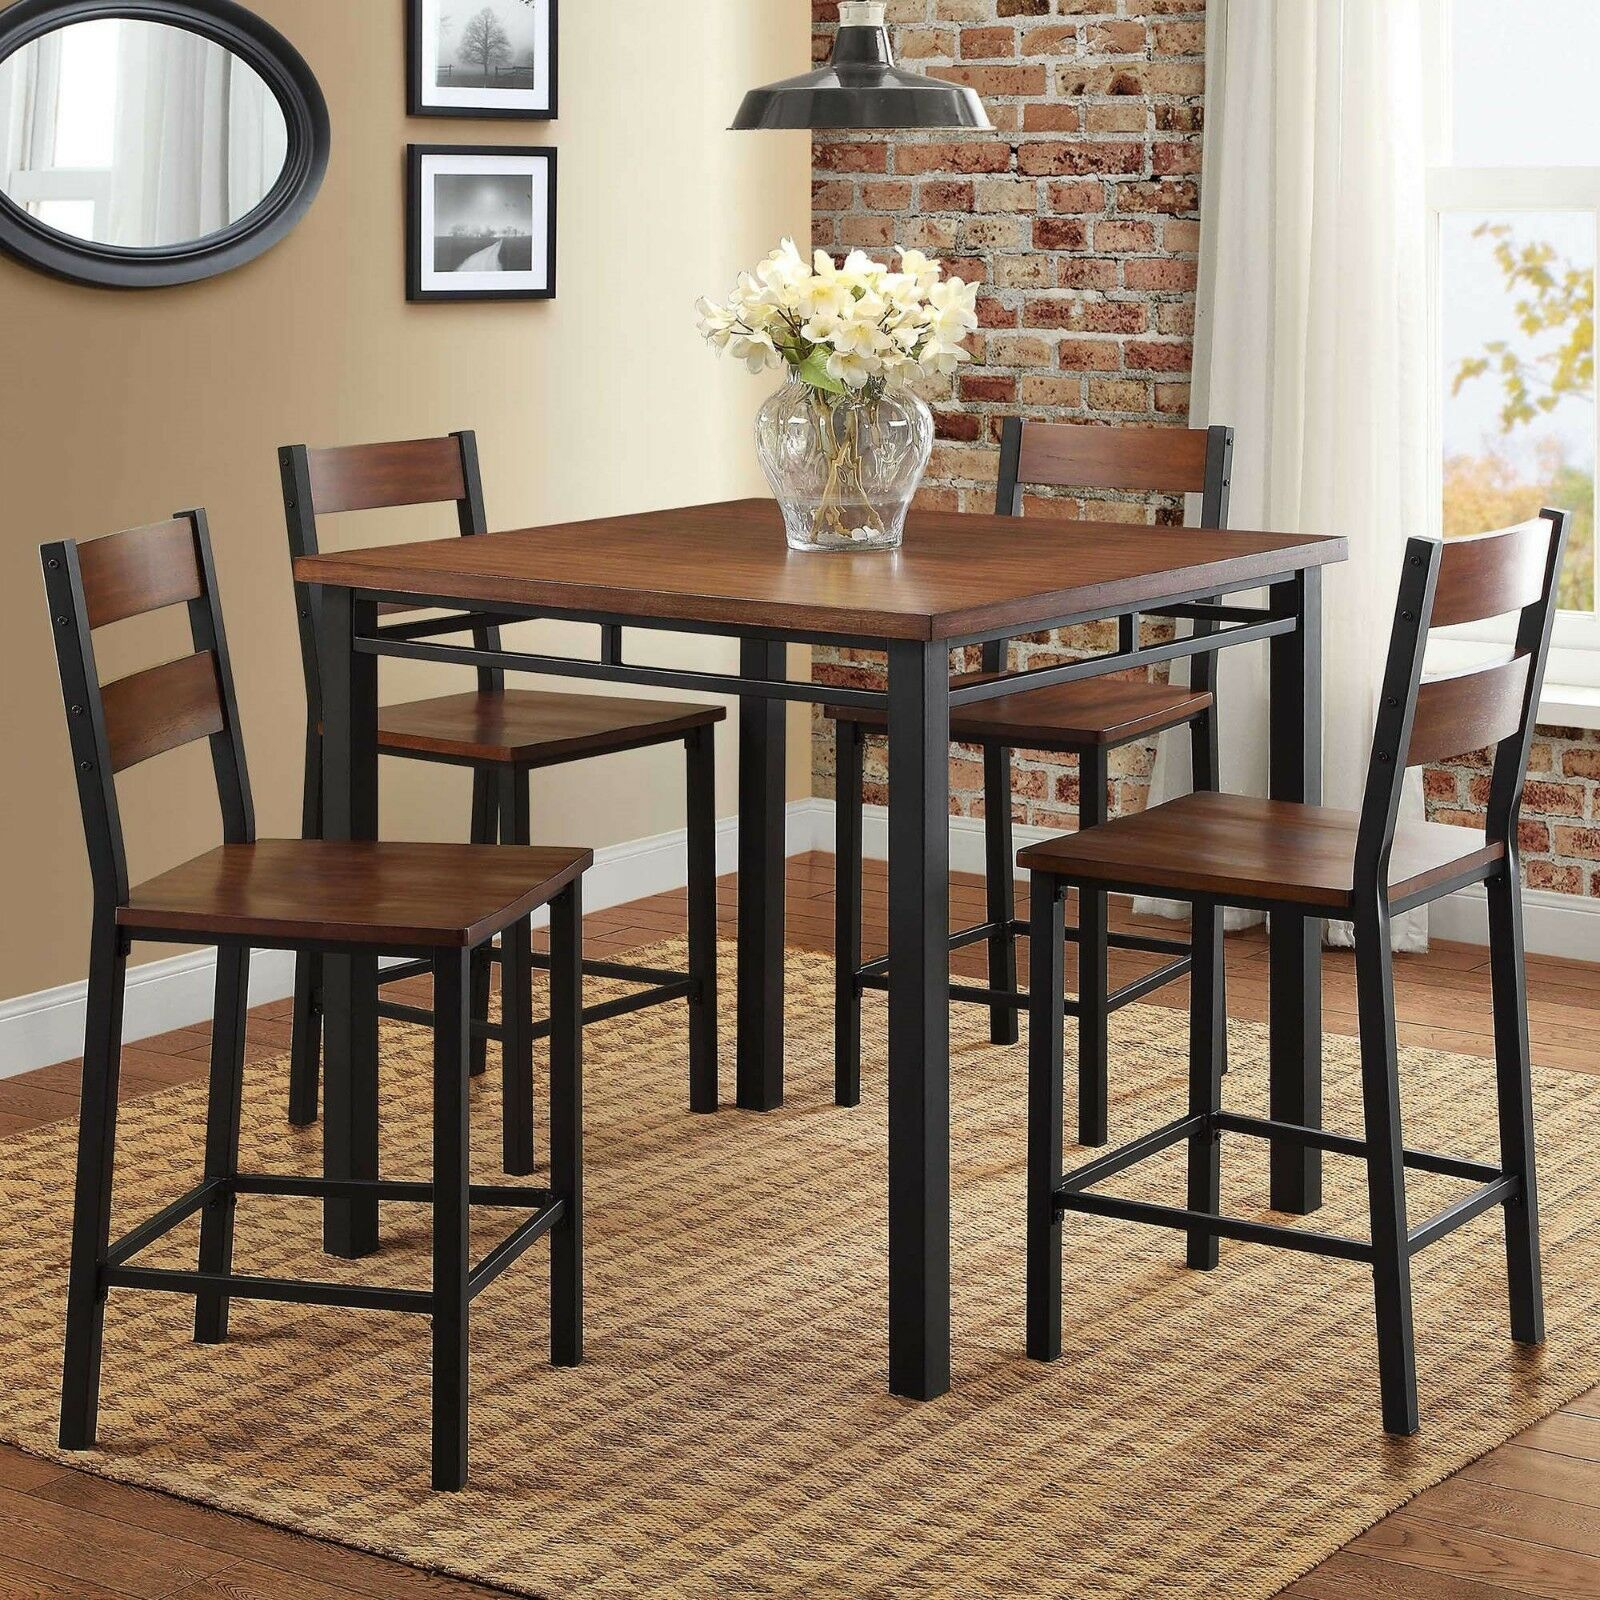 Counter Height Dining Set 5-Piece Chairs and Table Modern Ki